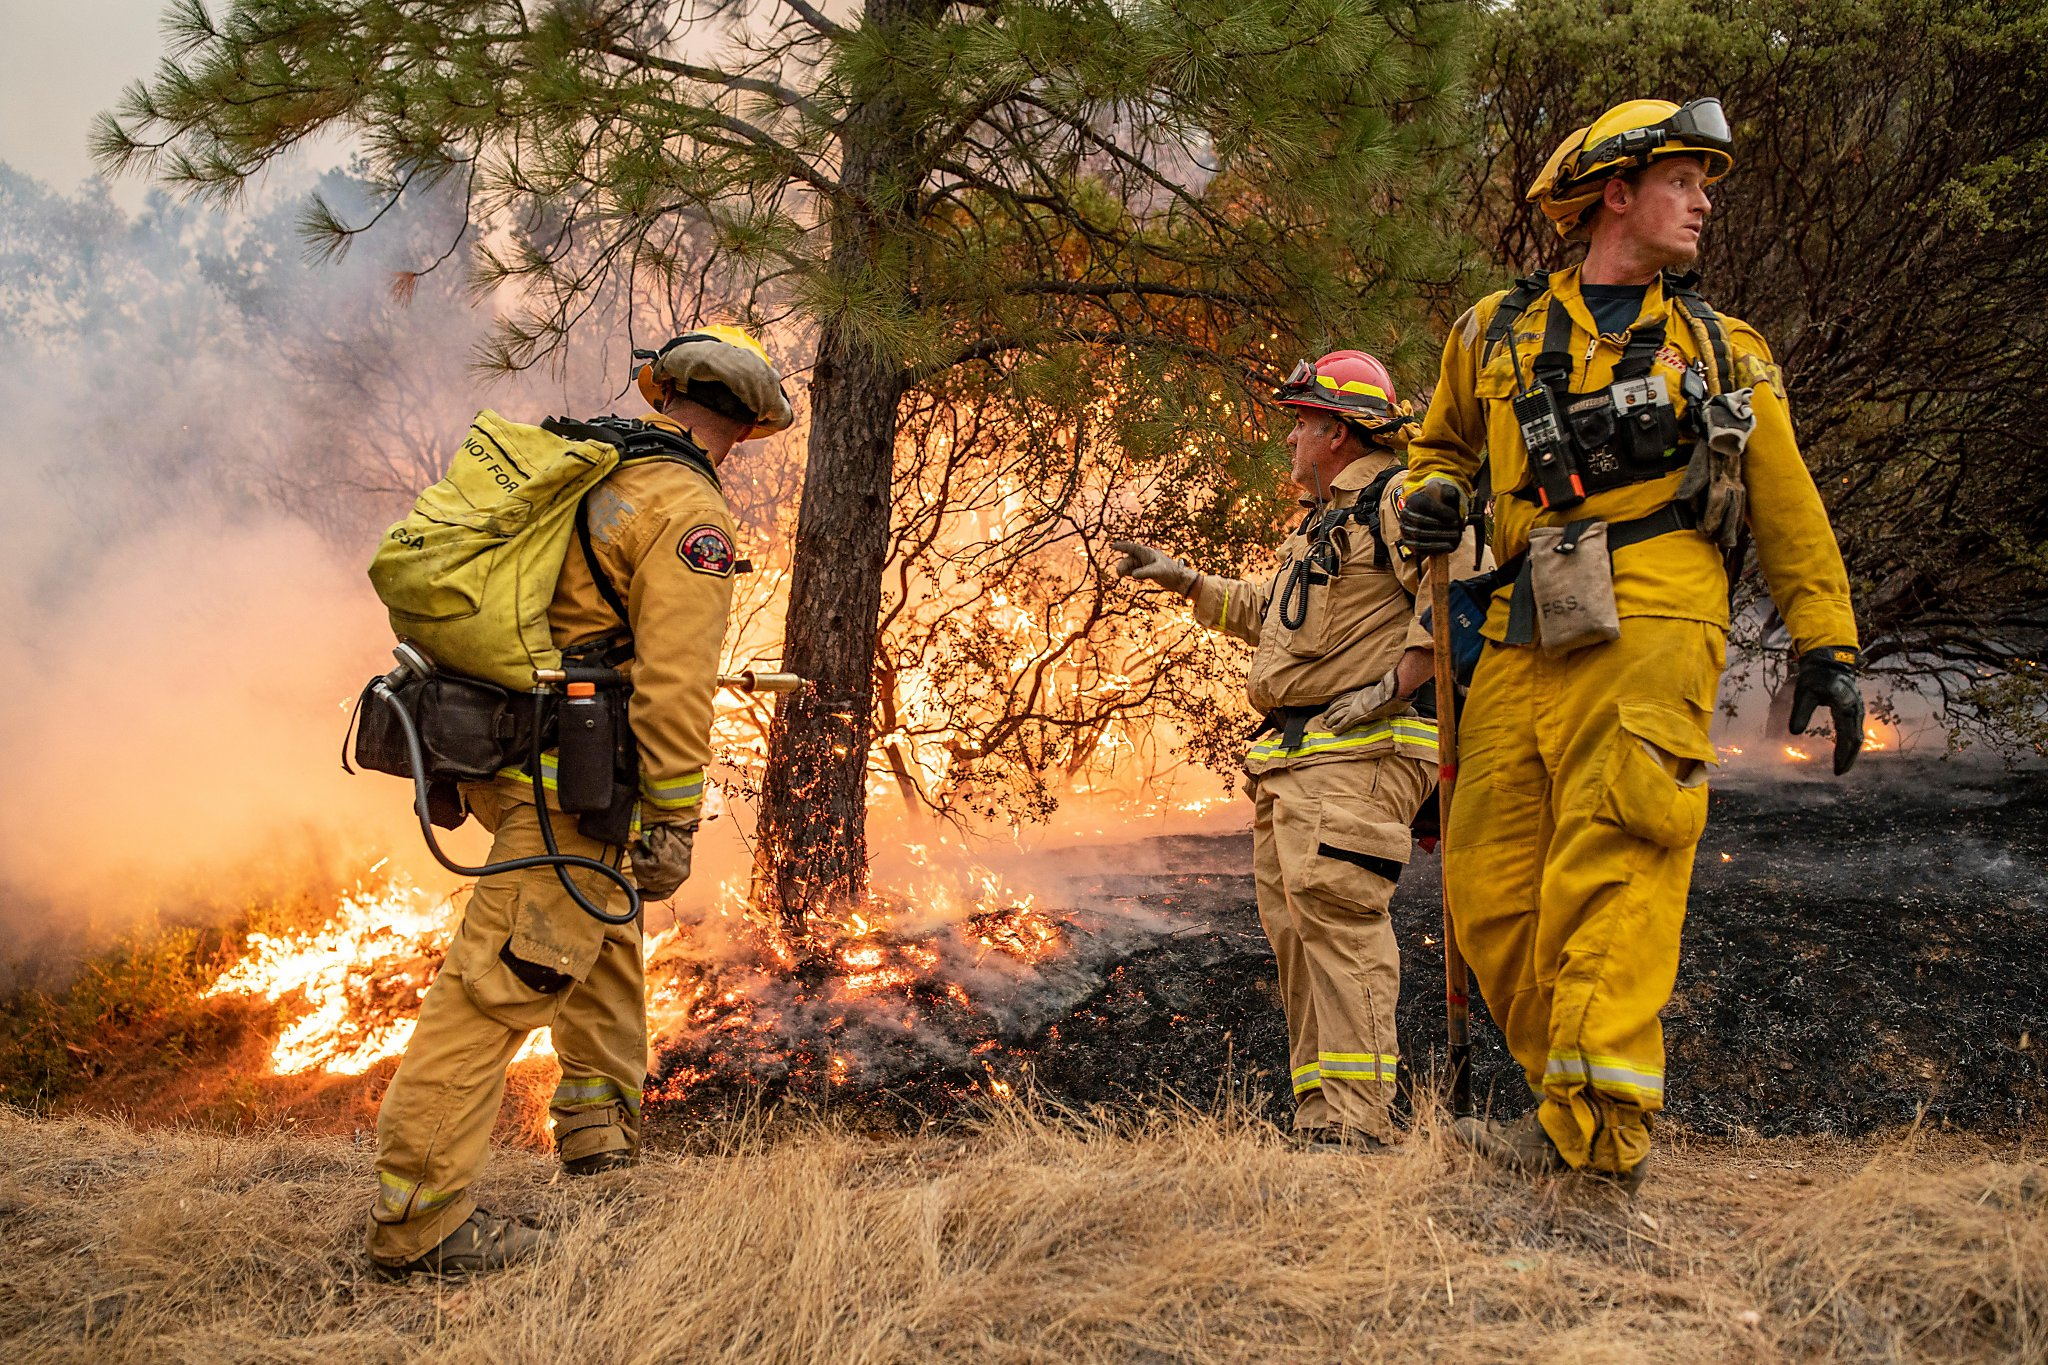 Saving Lives (and Breath) on the Wildland Fire Line